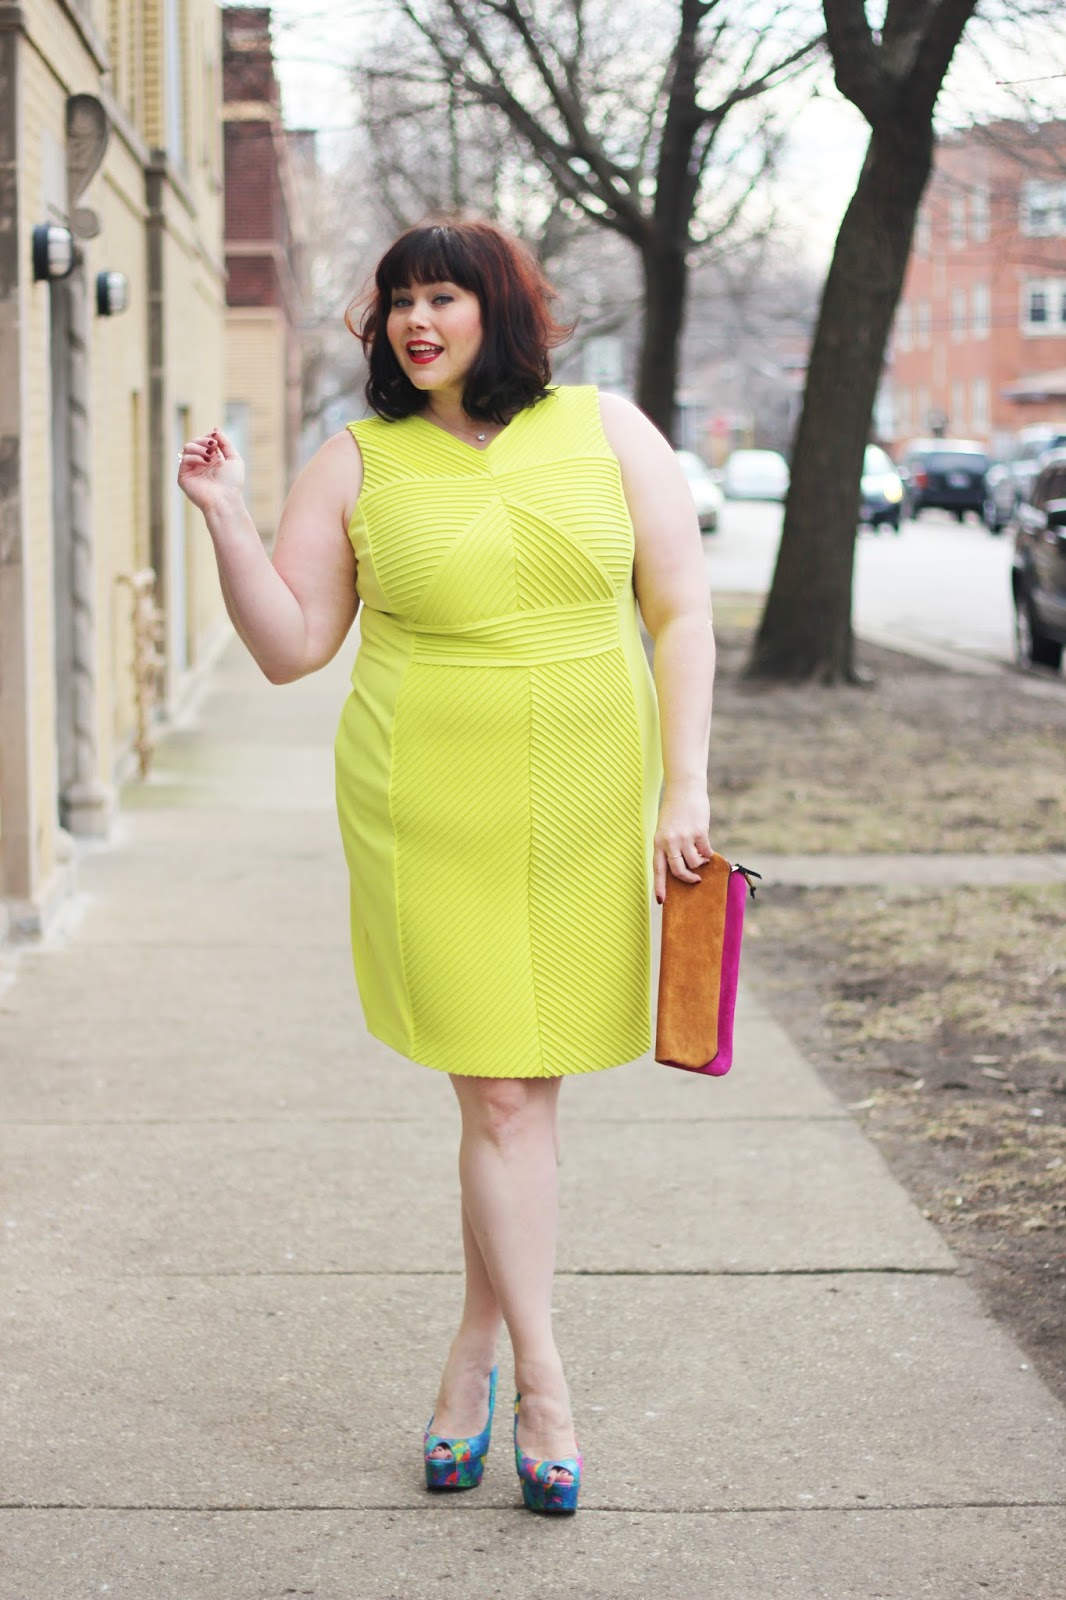 Plus Size Blogger Amber from Style Plus Curves in a bright yellow Calvin Klein Dress